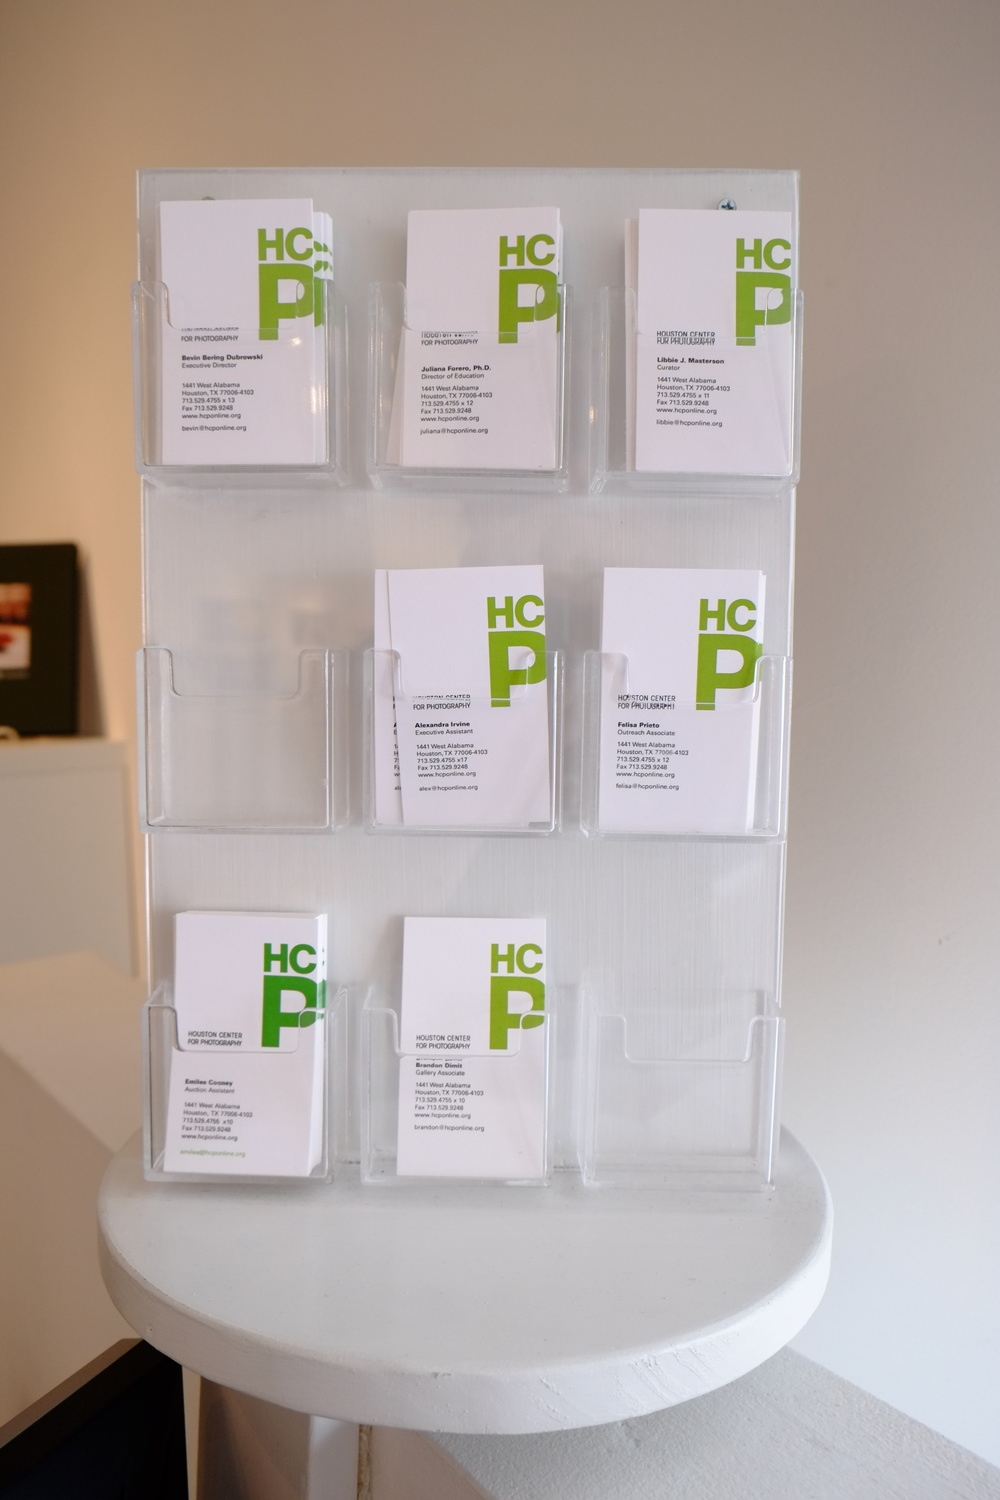 HCP Cards